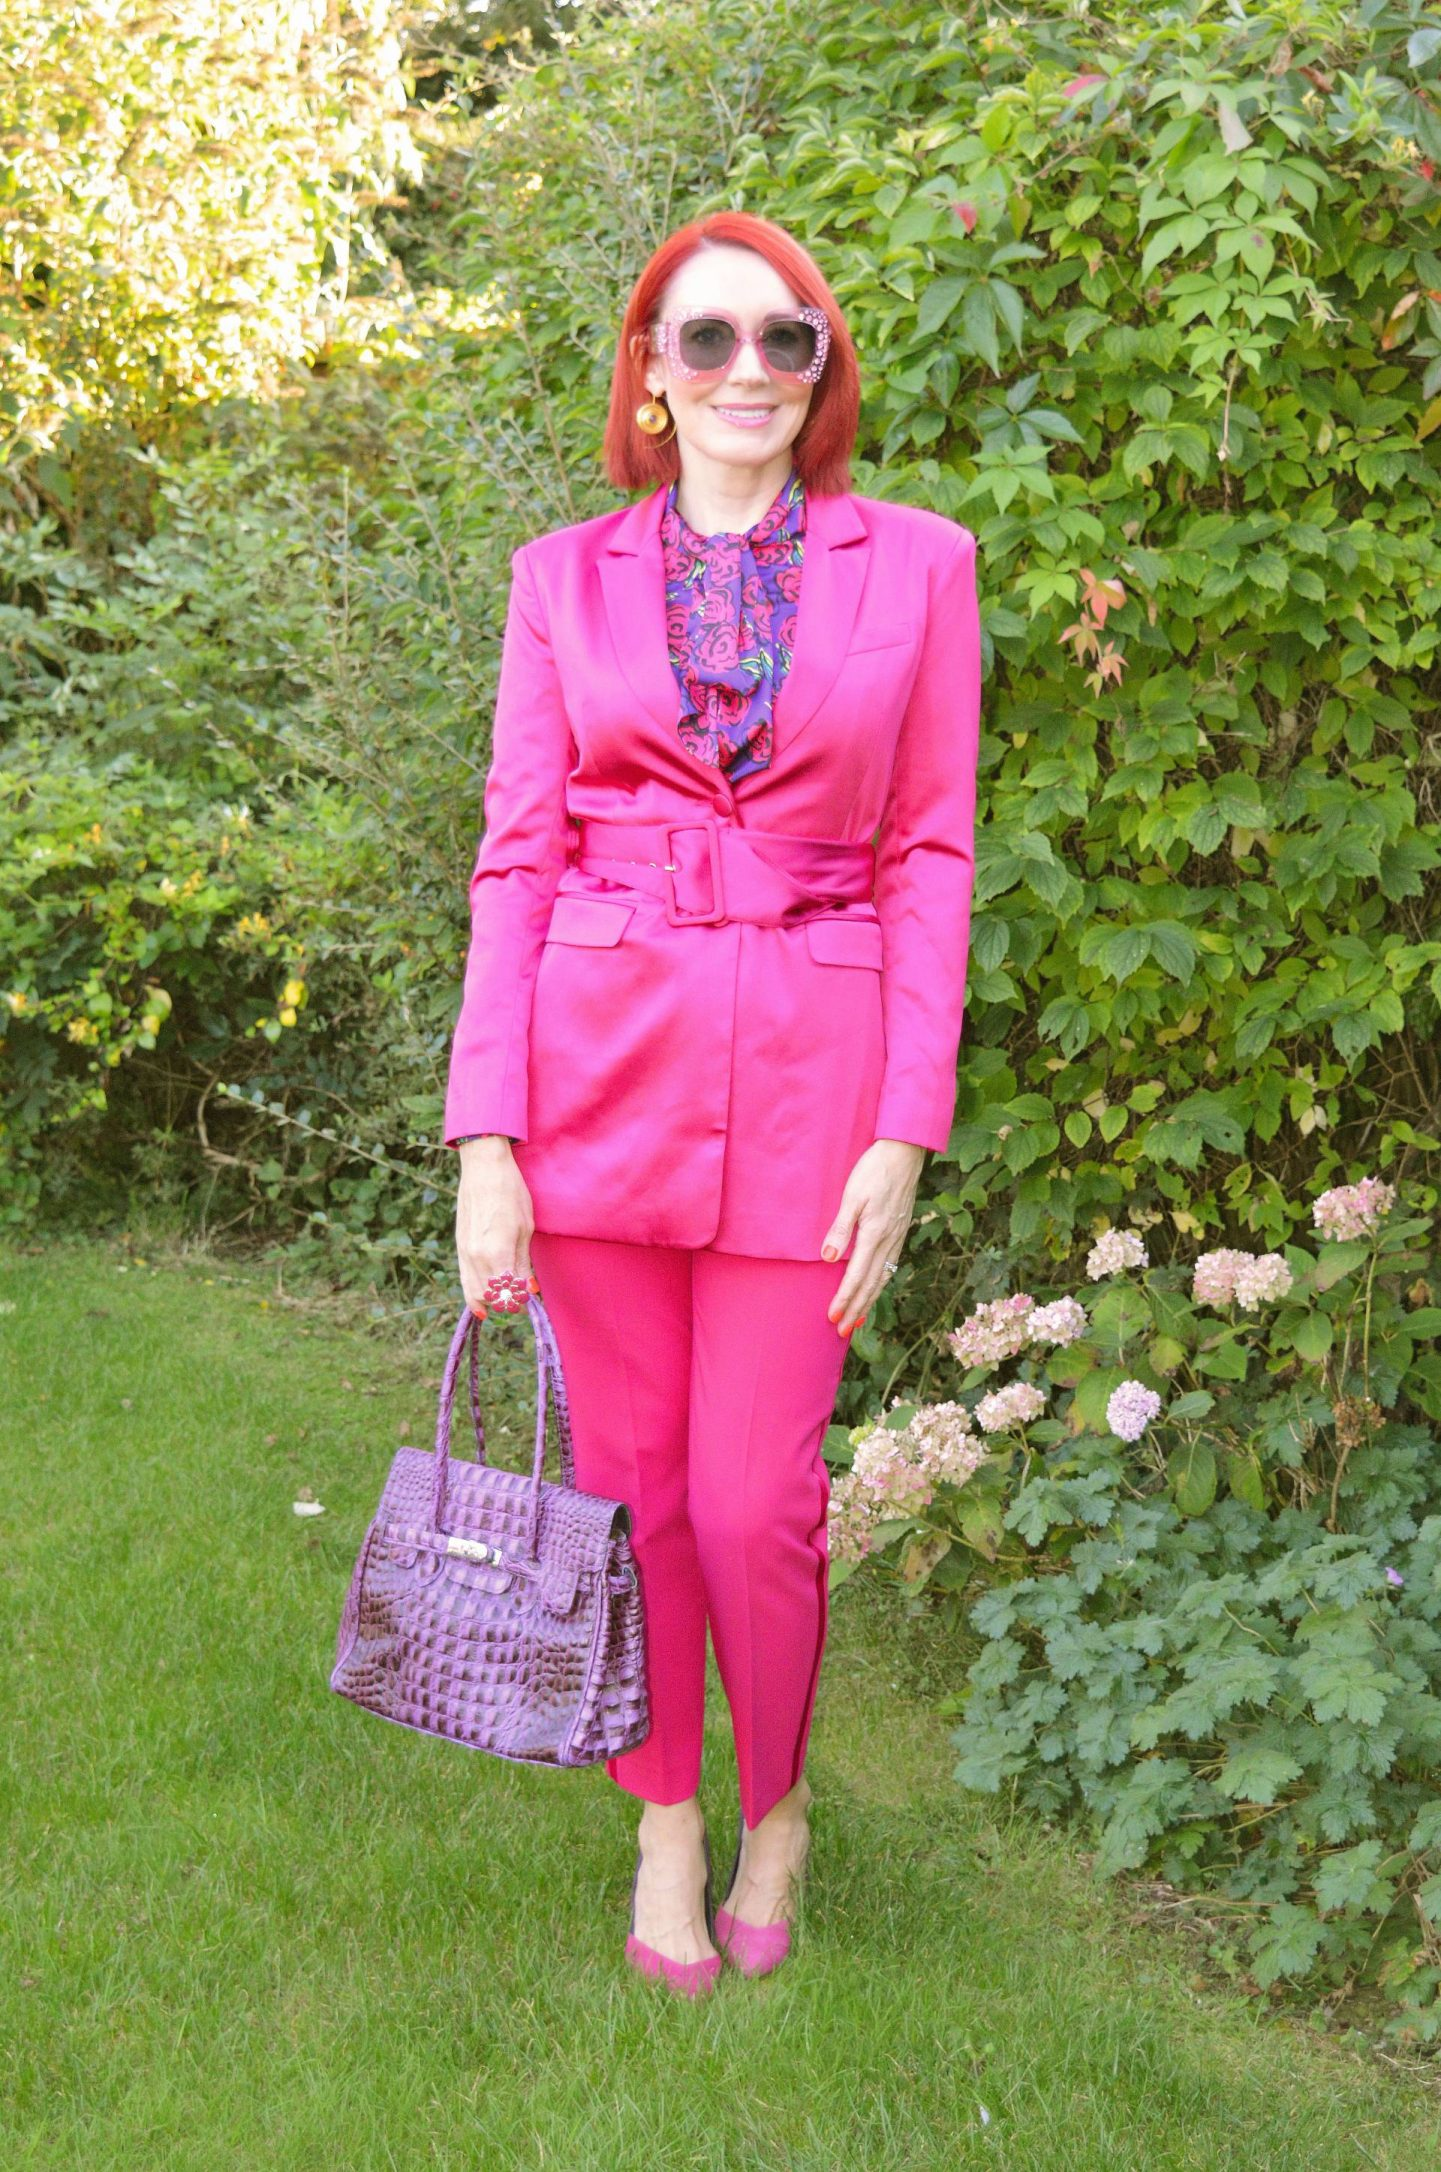 Pretty in Pink - September's Style Not Age, Asos hot pink belted jacket, Zara pink trousers, Asos pink oversized sunglasses, Hawes & Curtis blouse